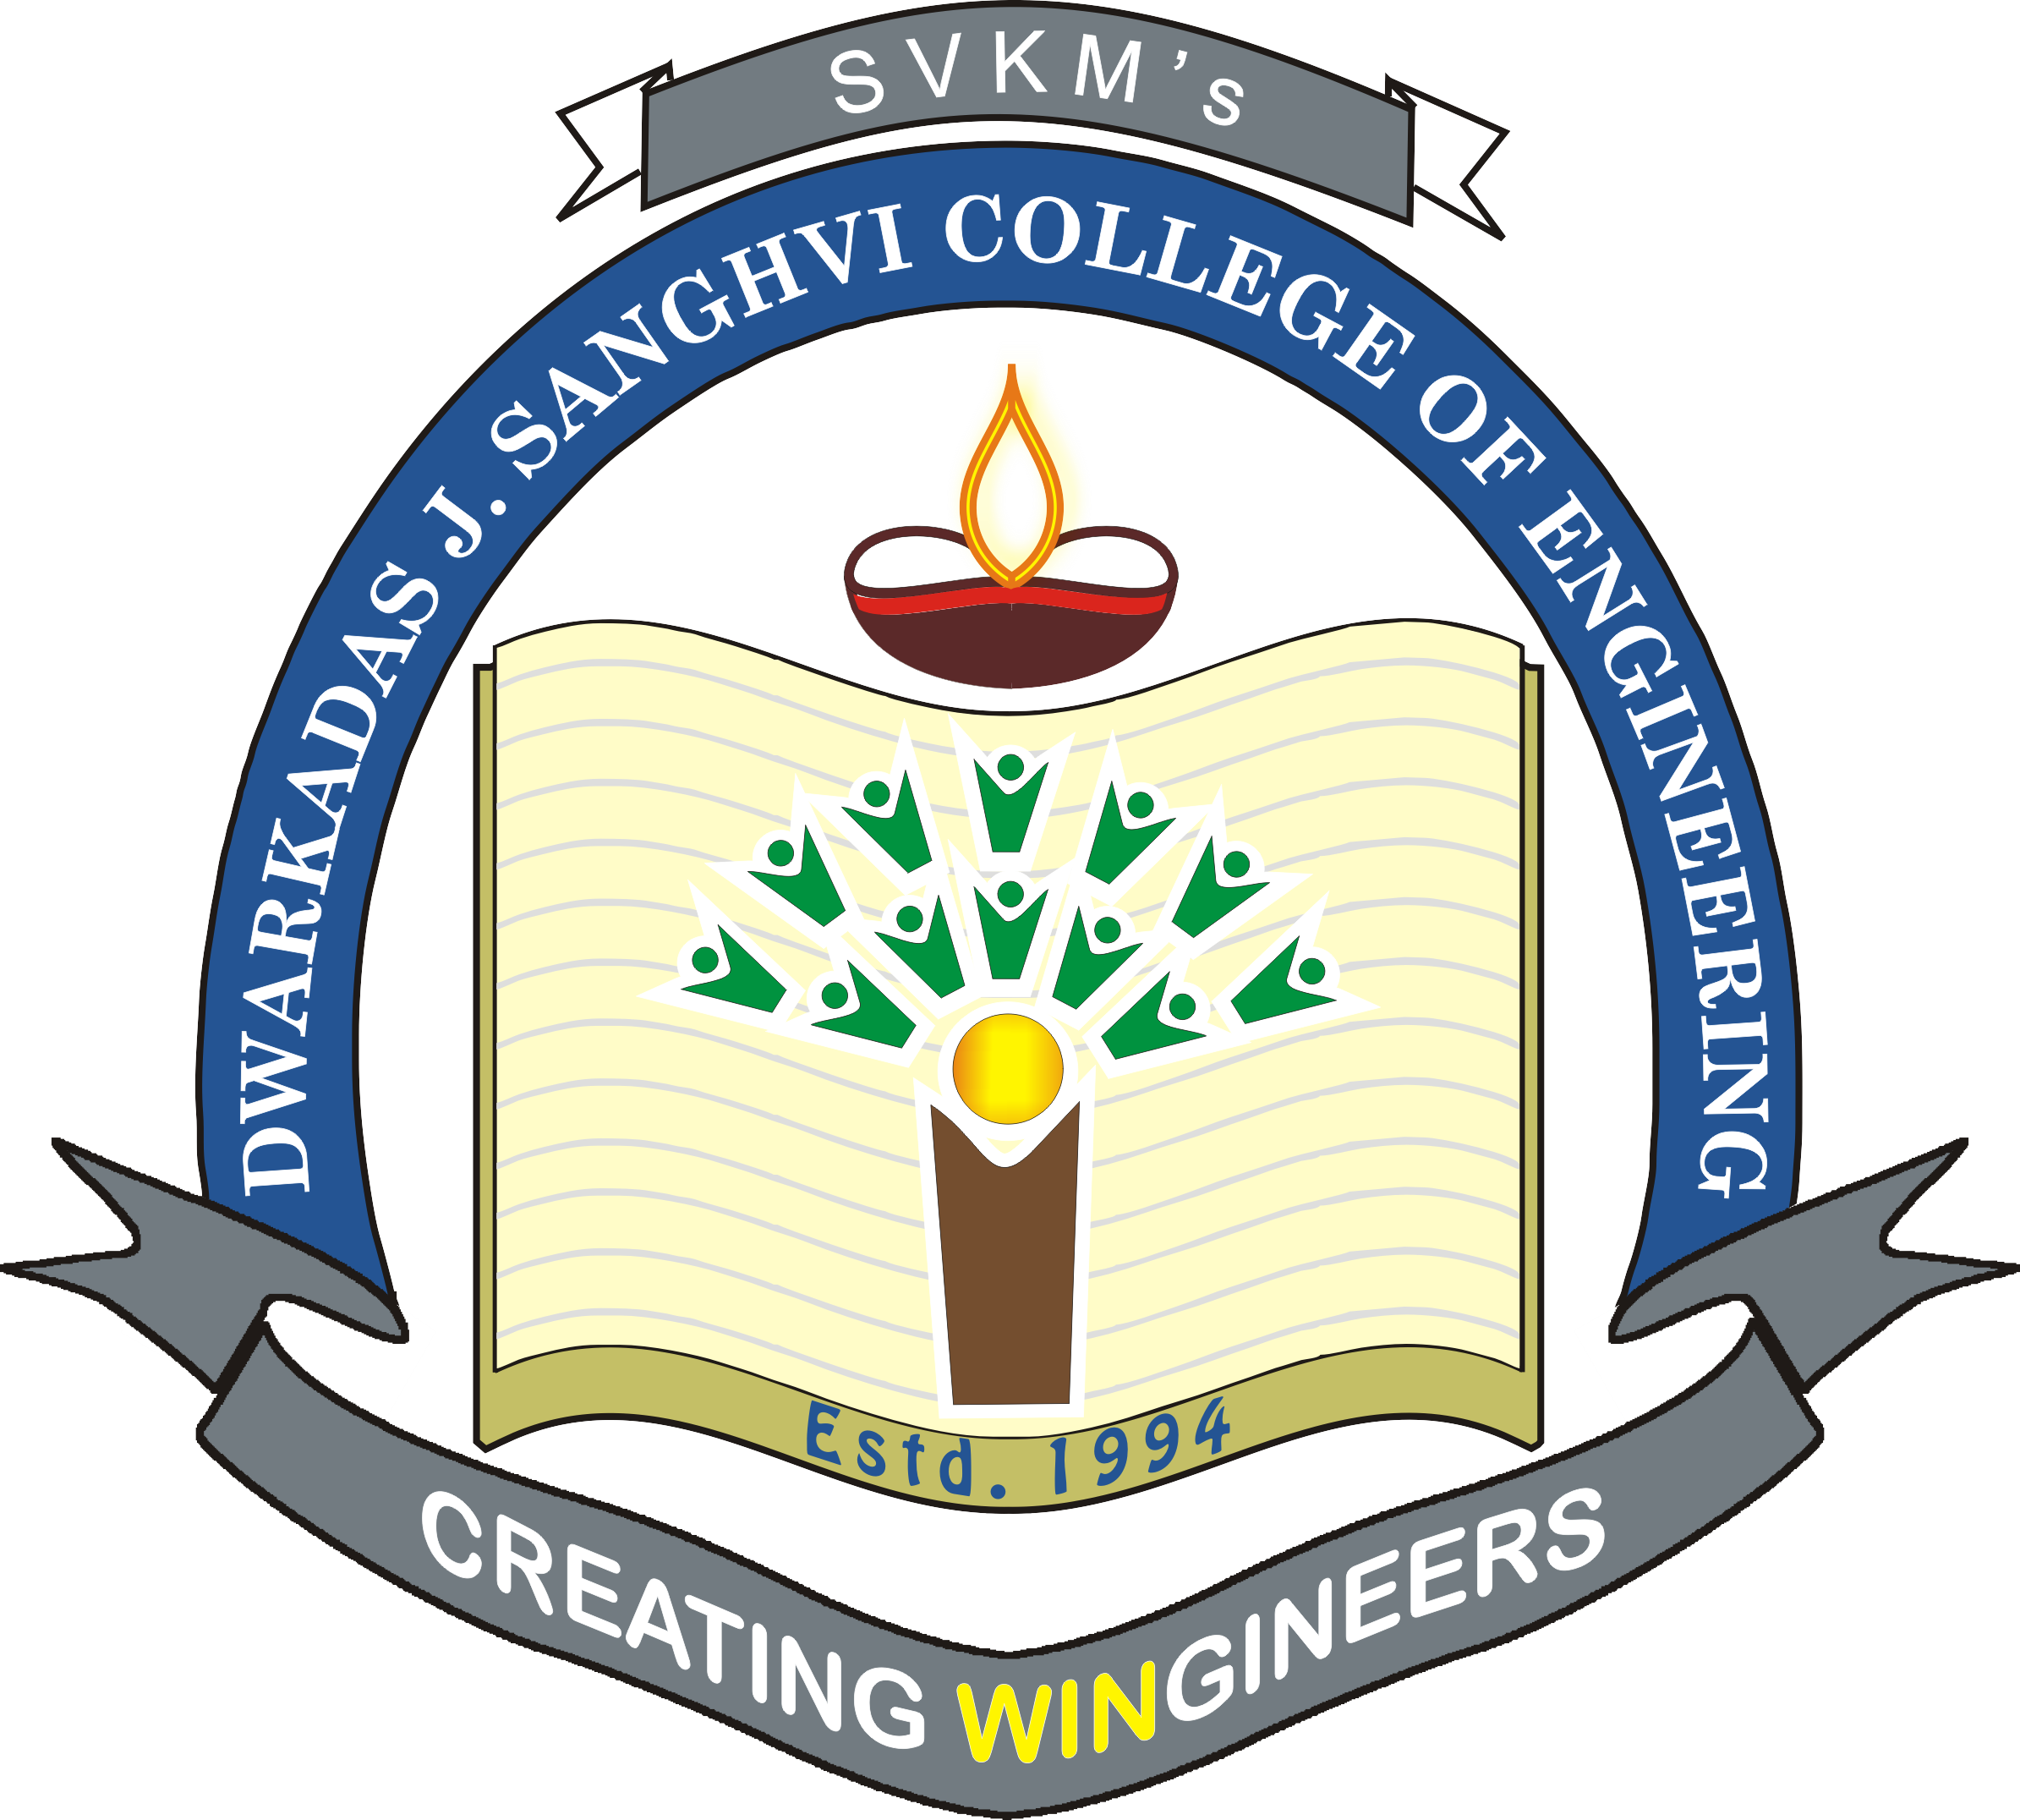 Dwarkadas J. Sanghvi College of Engineering, Mumbai